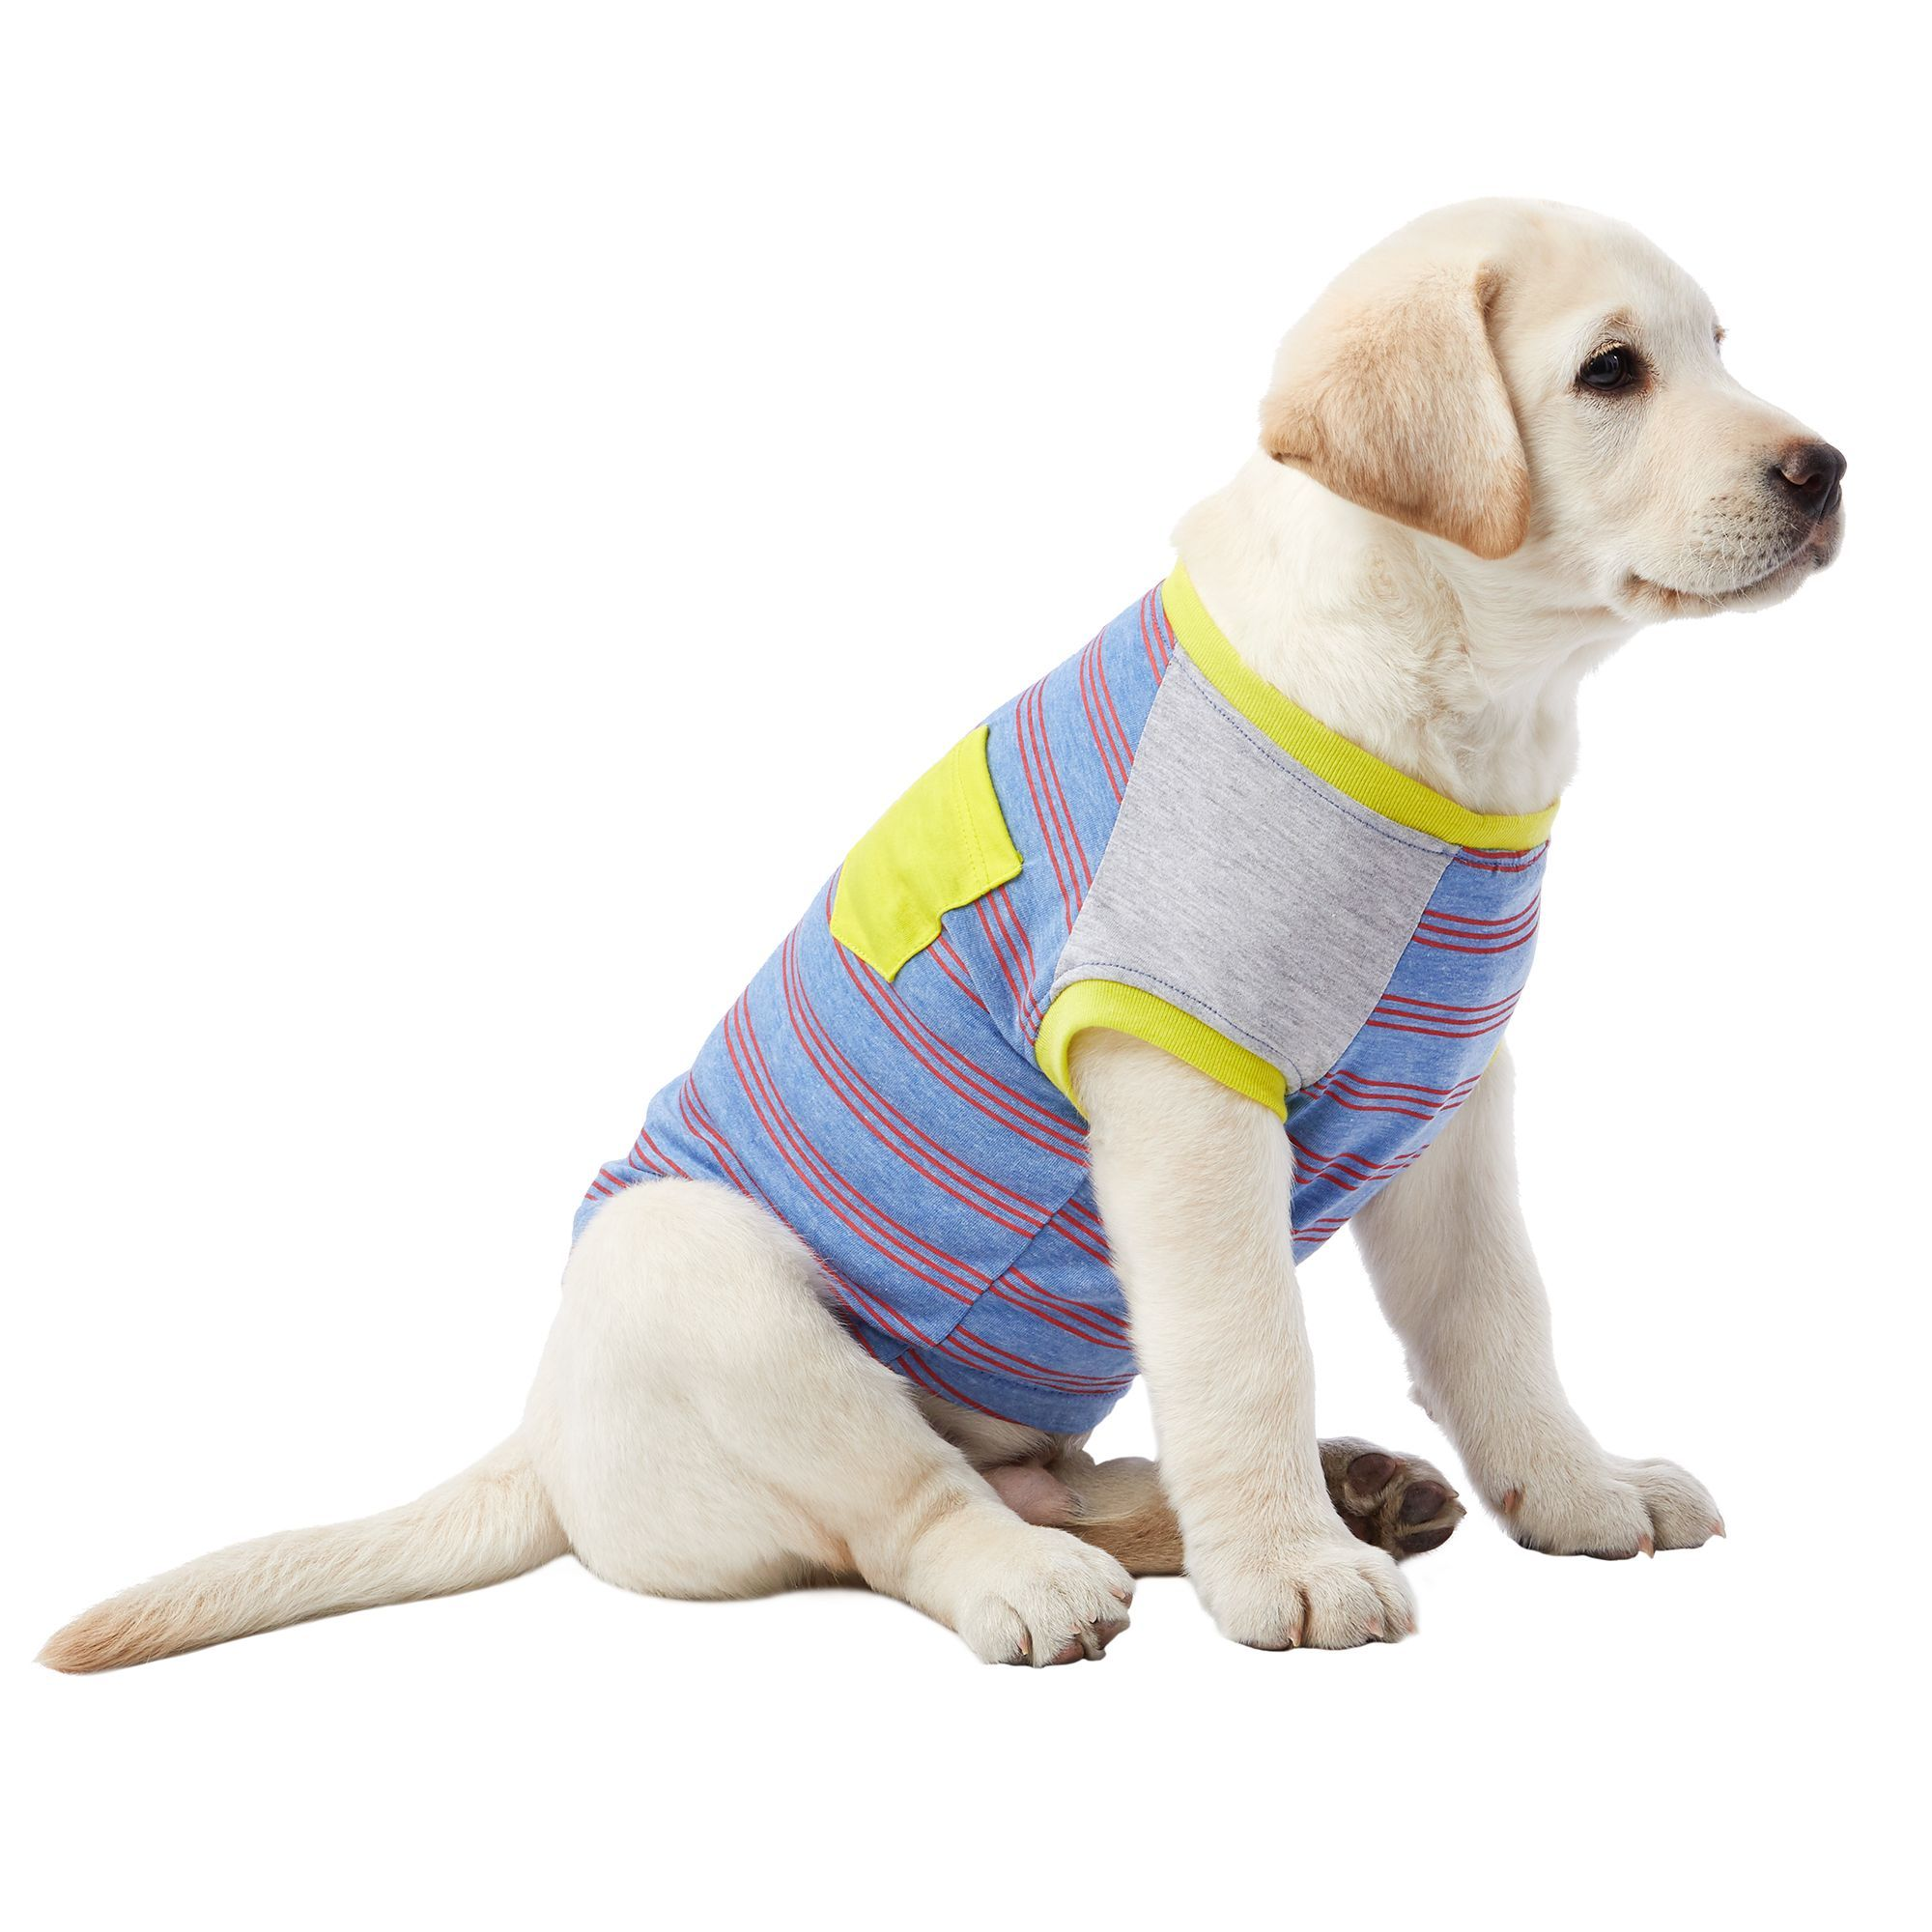 Top Paw Pocket Striped Pet Tee size Large, blue/wash in